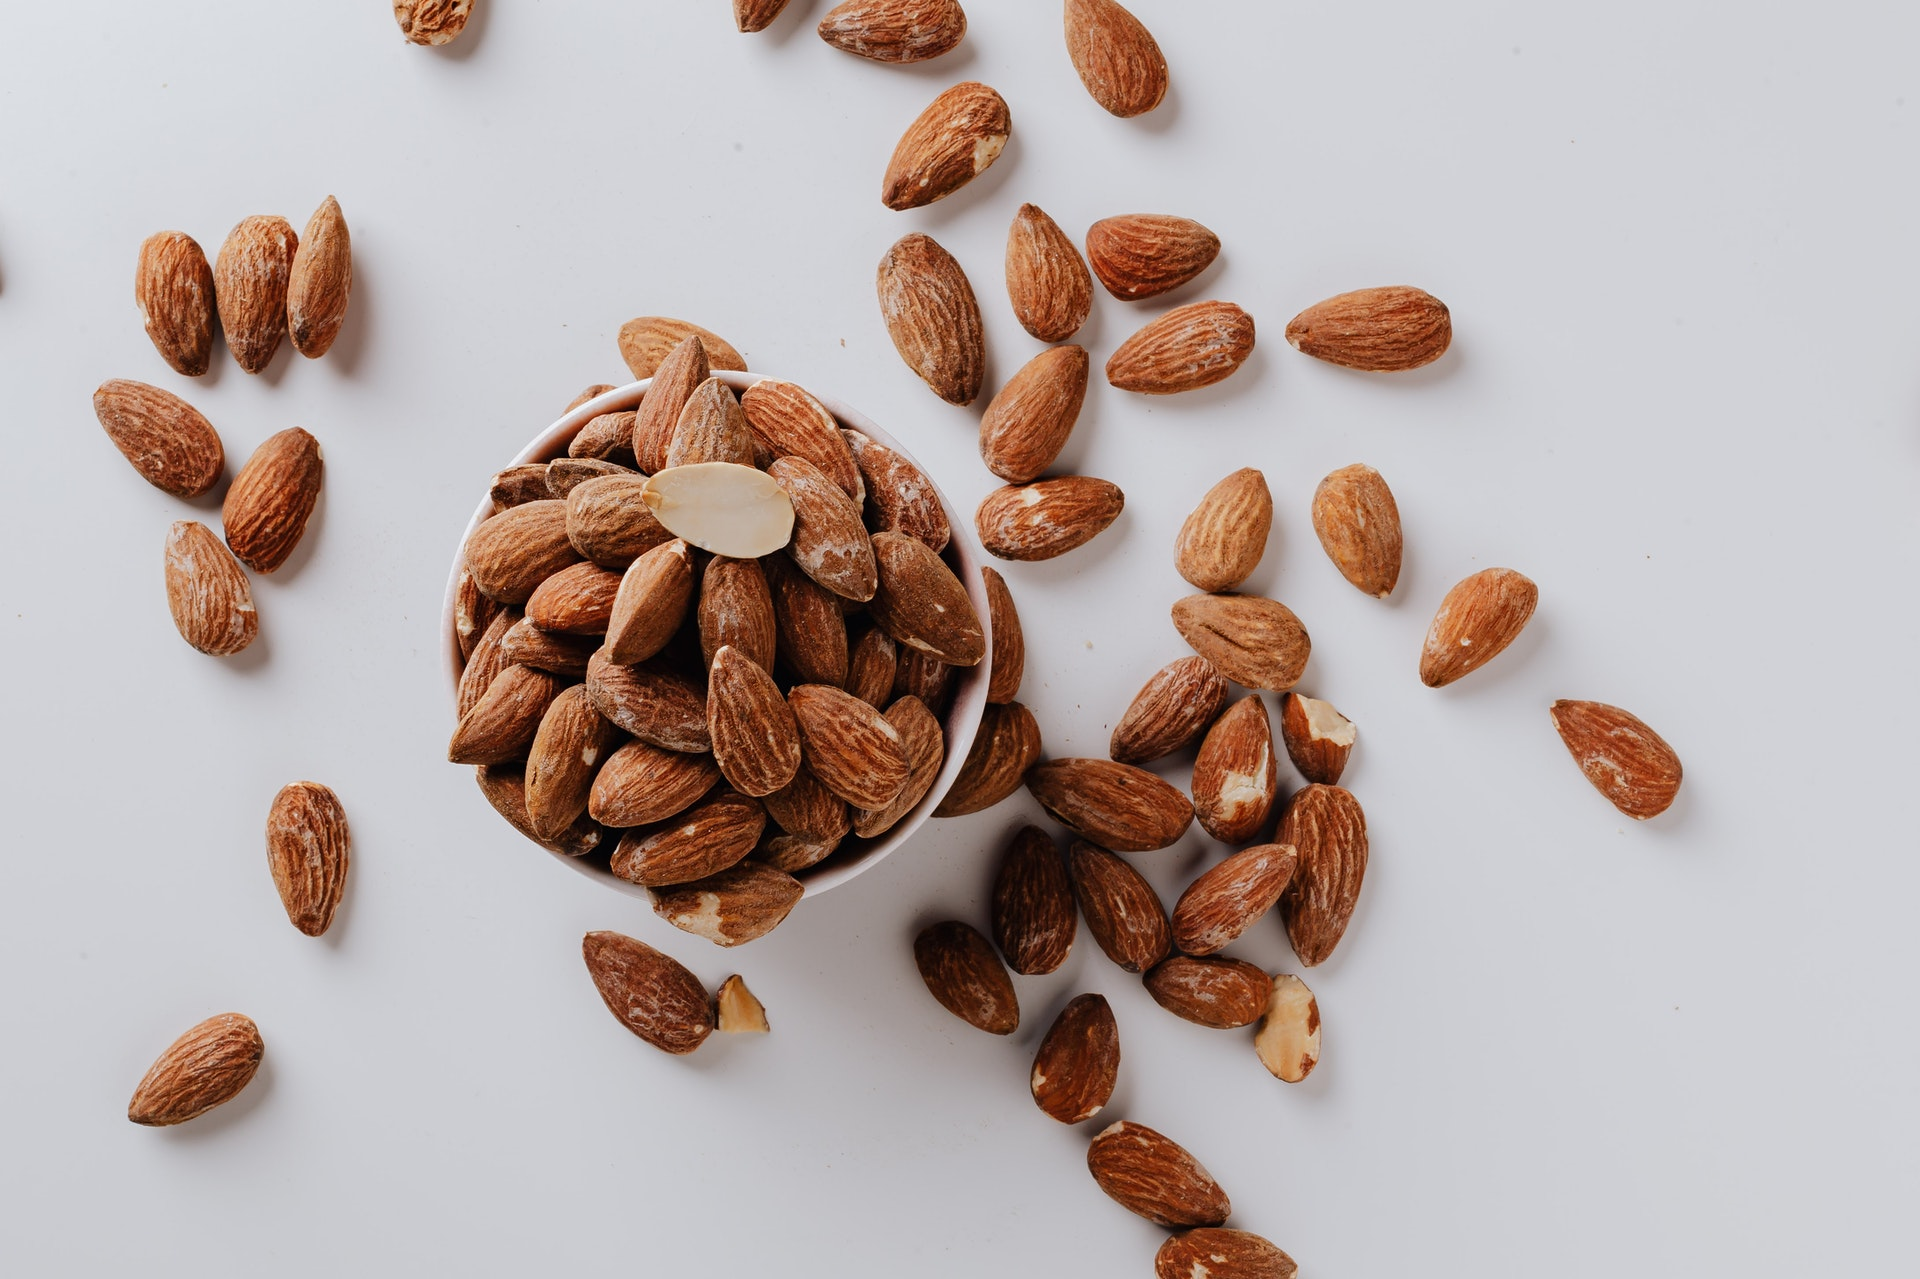 Importance Of Nuts